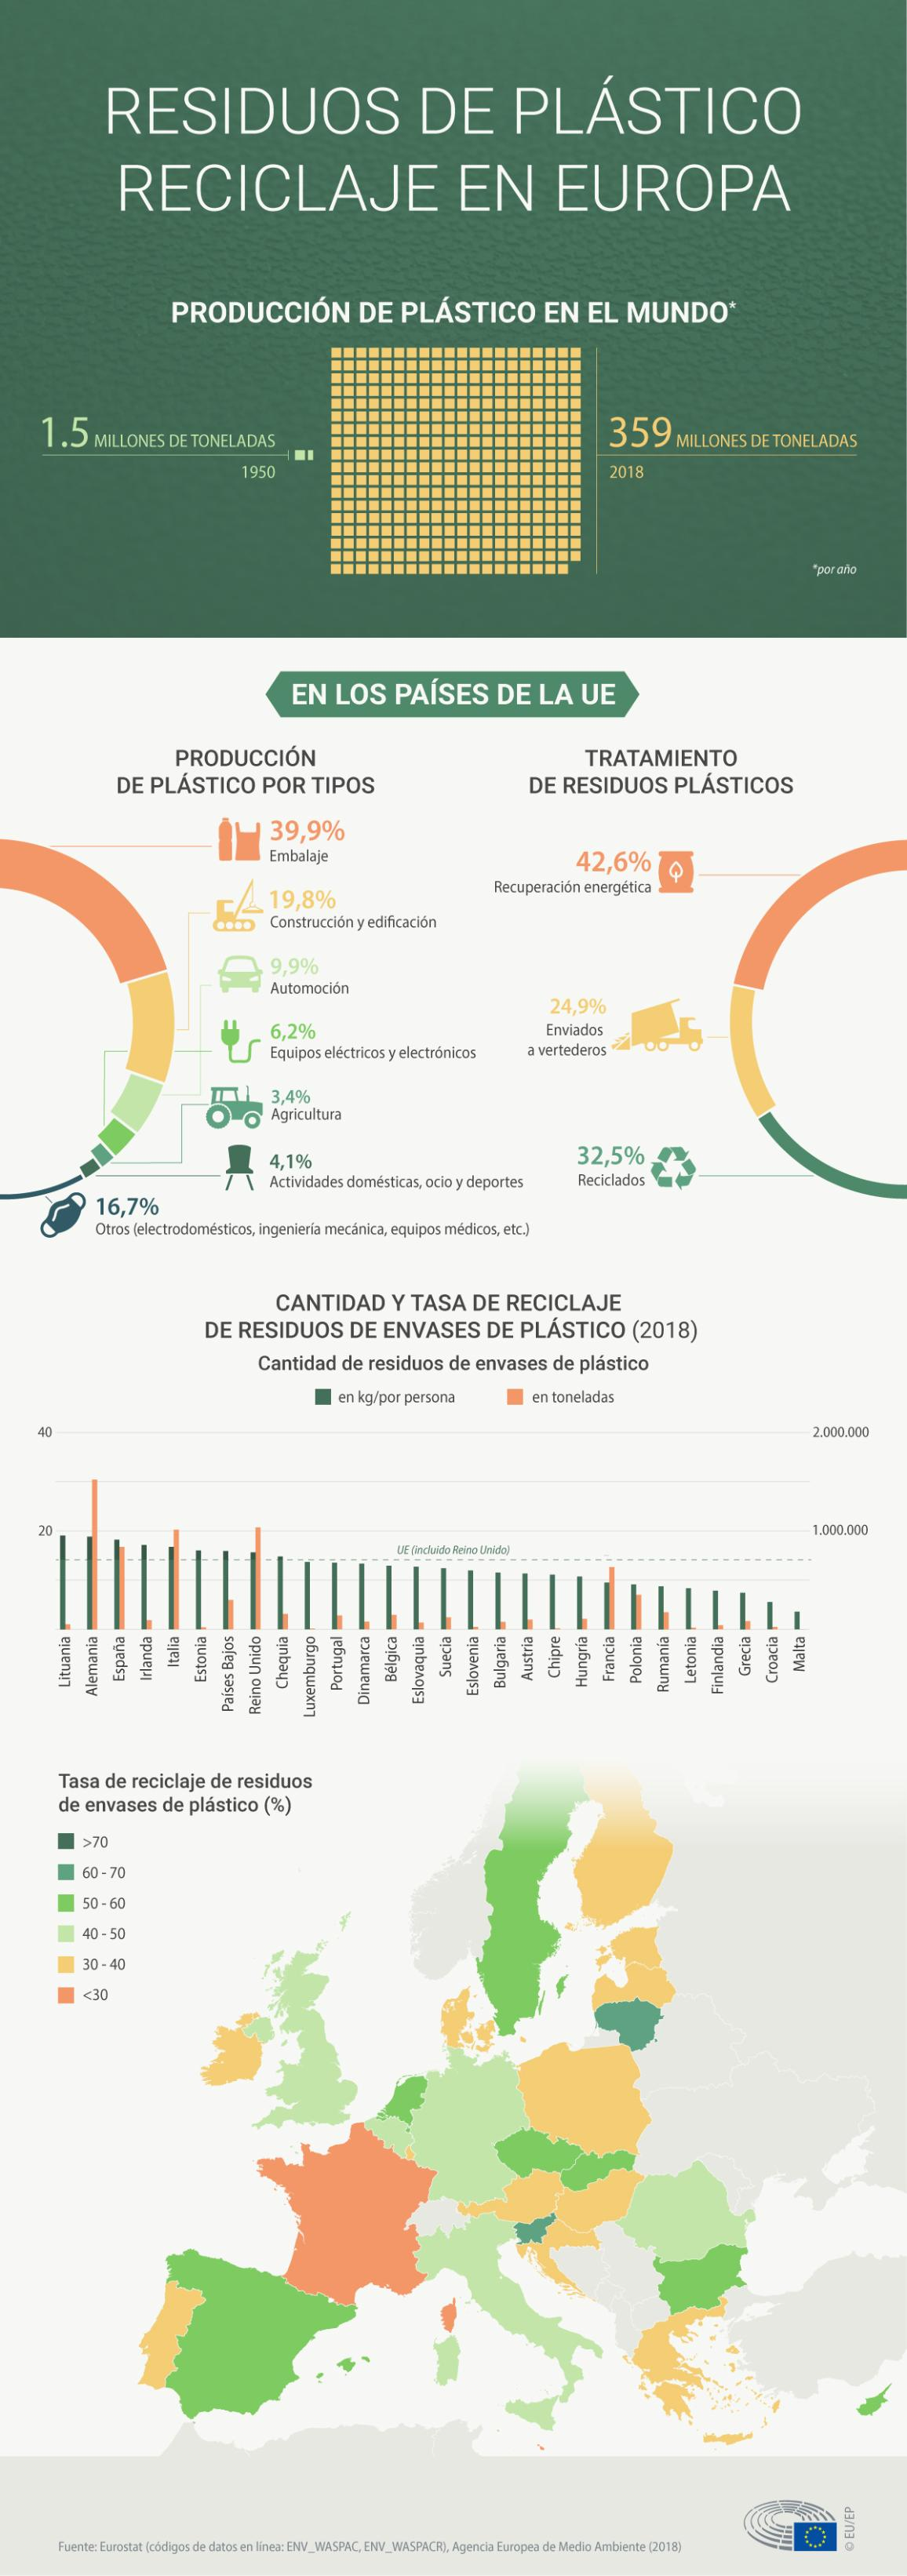 Infographic about plastic waste and recycling in Europe